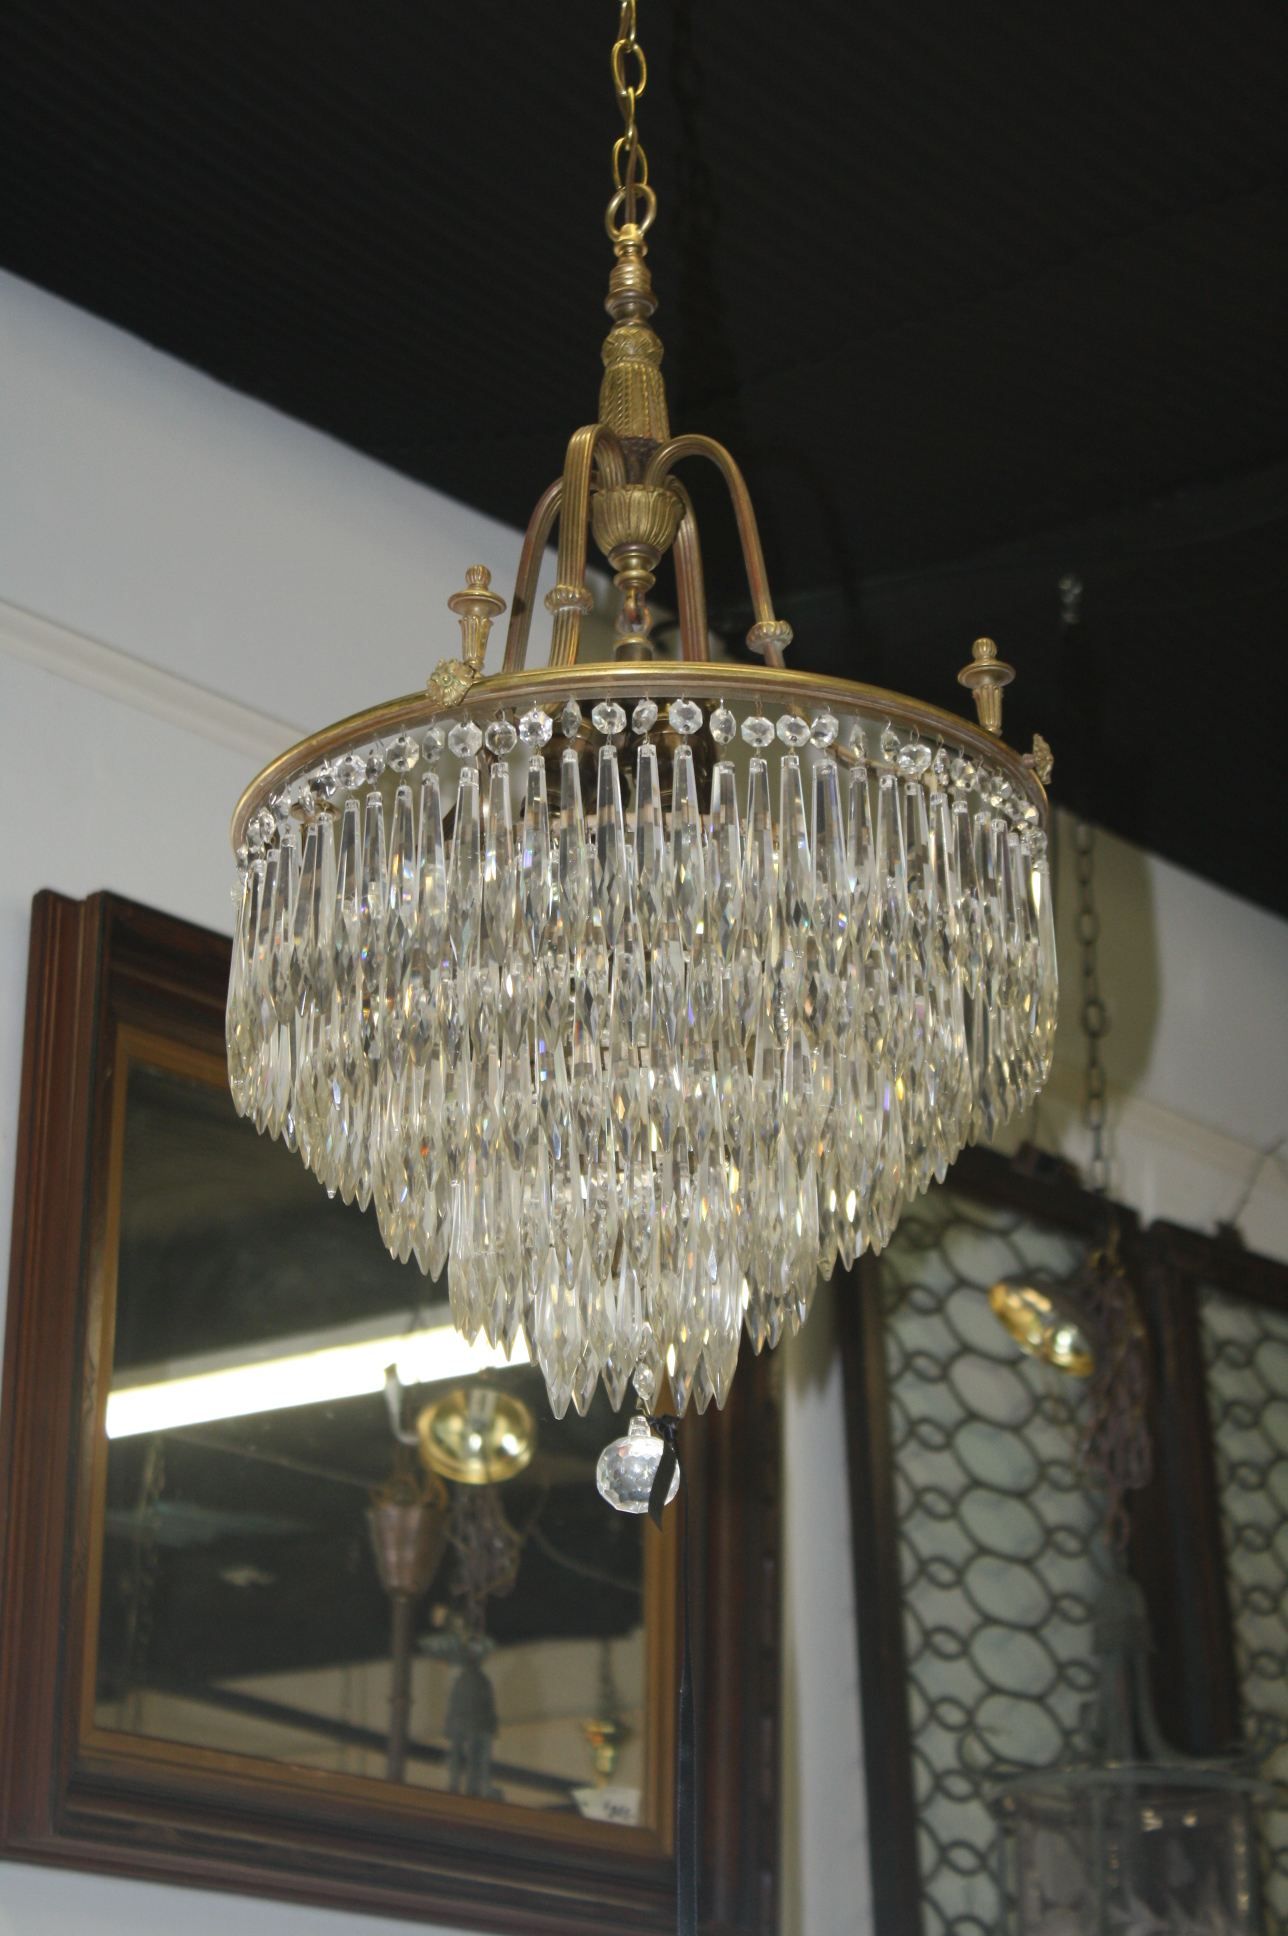 Antique lead crystal chandelier chandelier designs antique lead crystal chandeliers chandelier designs aloadofball Image collections